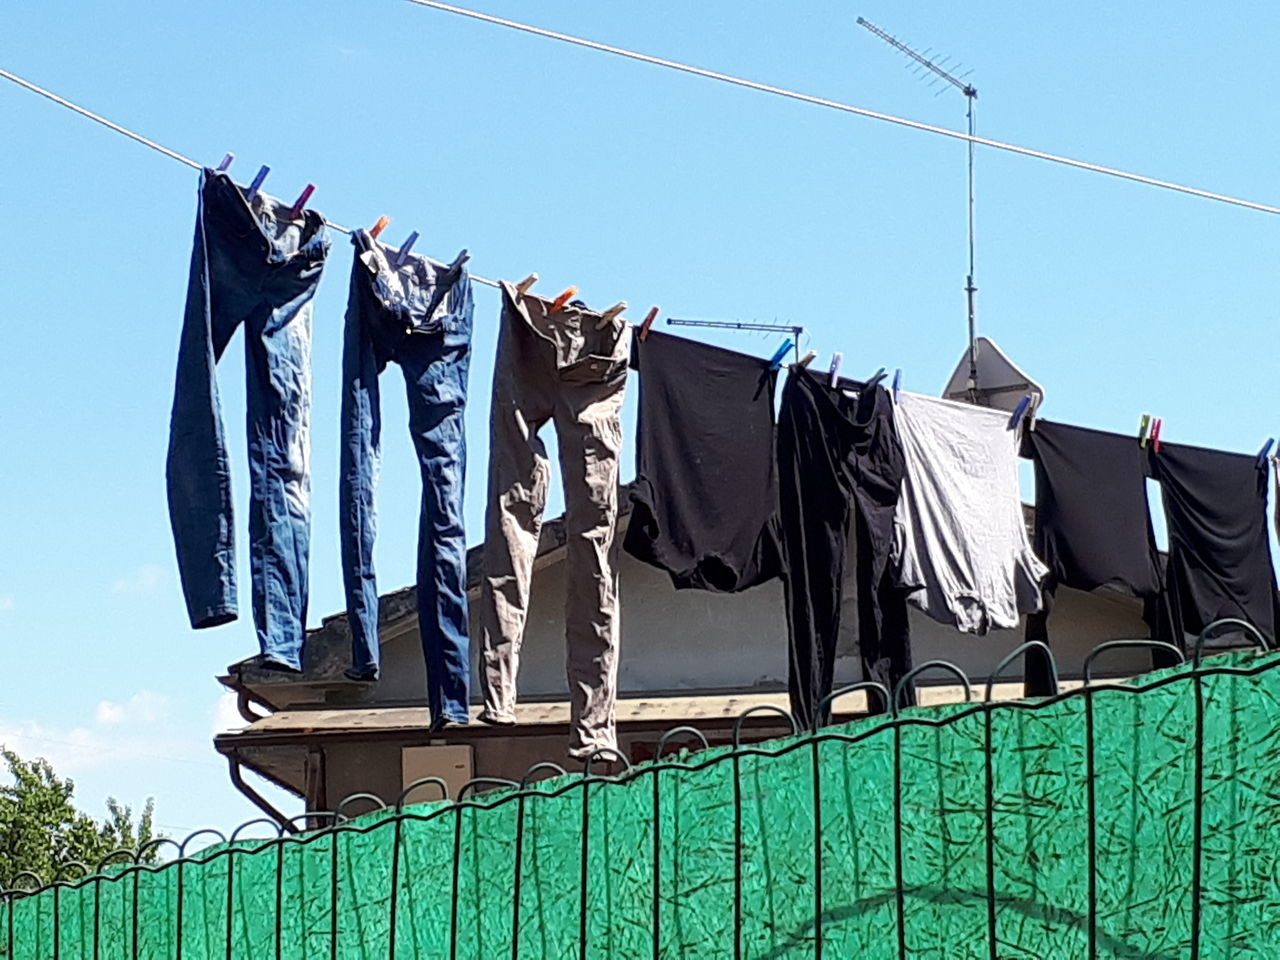 hanging, clothing, low angle view, drying, clothesline, no people, day, outdoors, sky, architecture, clear sky, building exterior